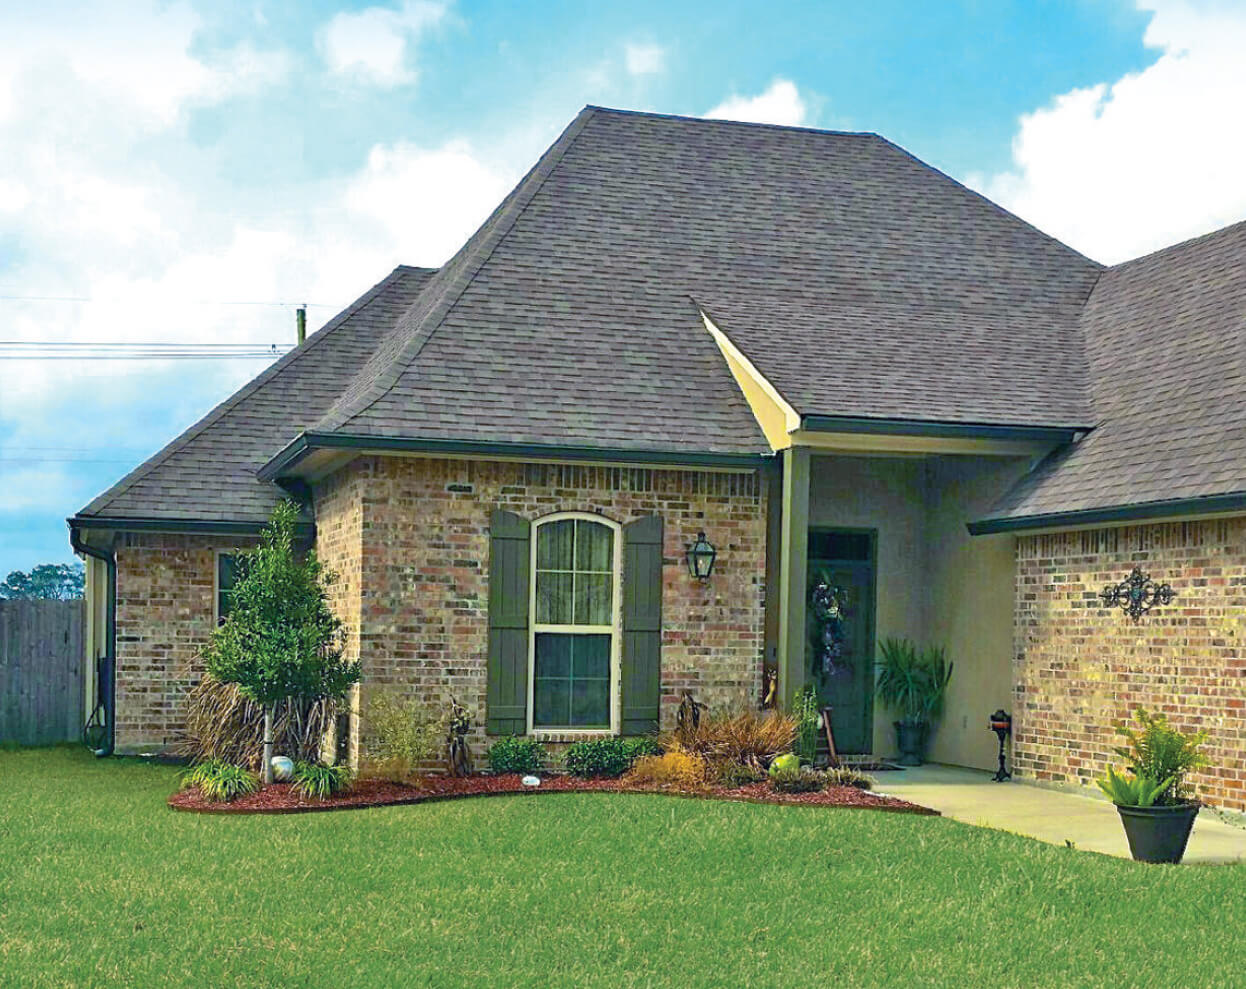 Broussard, LA Seamless Gutter Installation & Maintenance Services